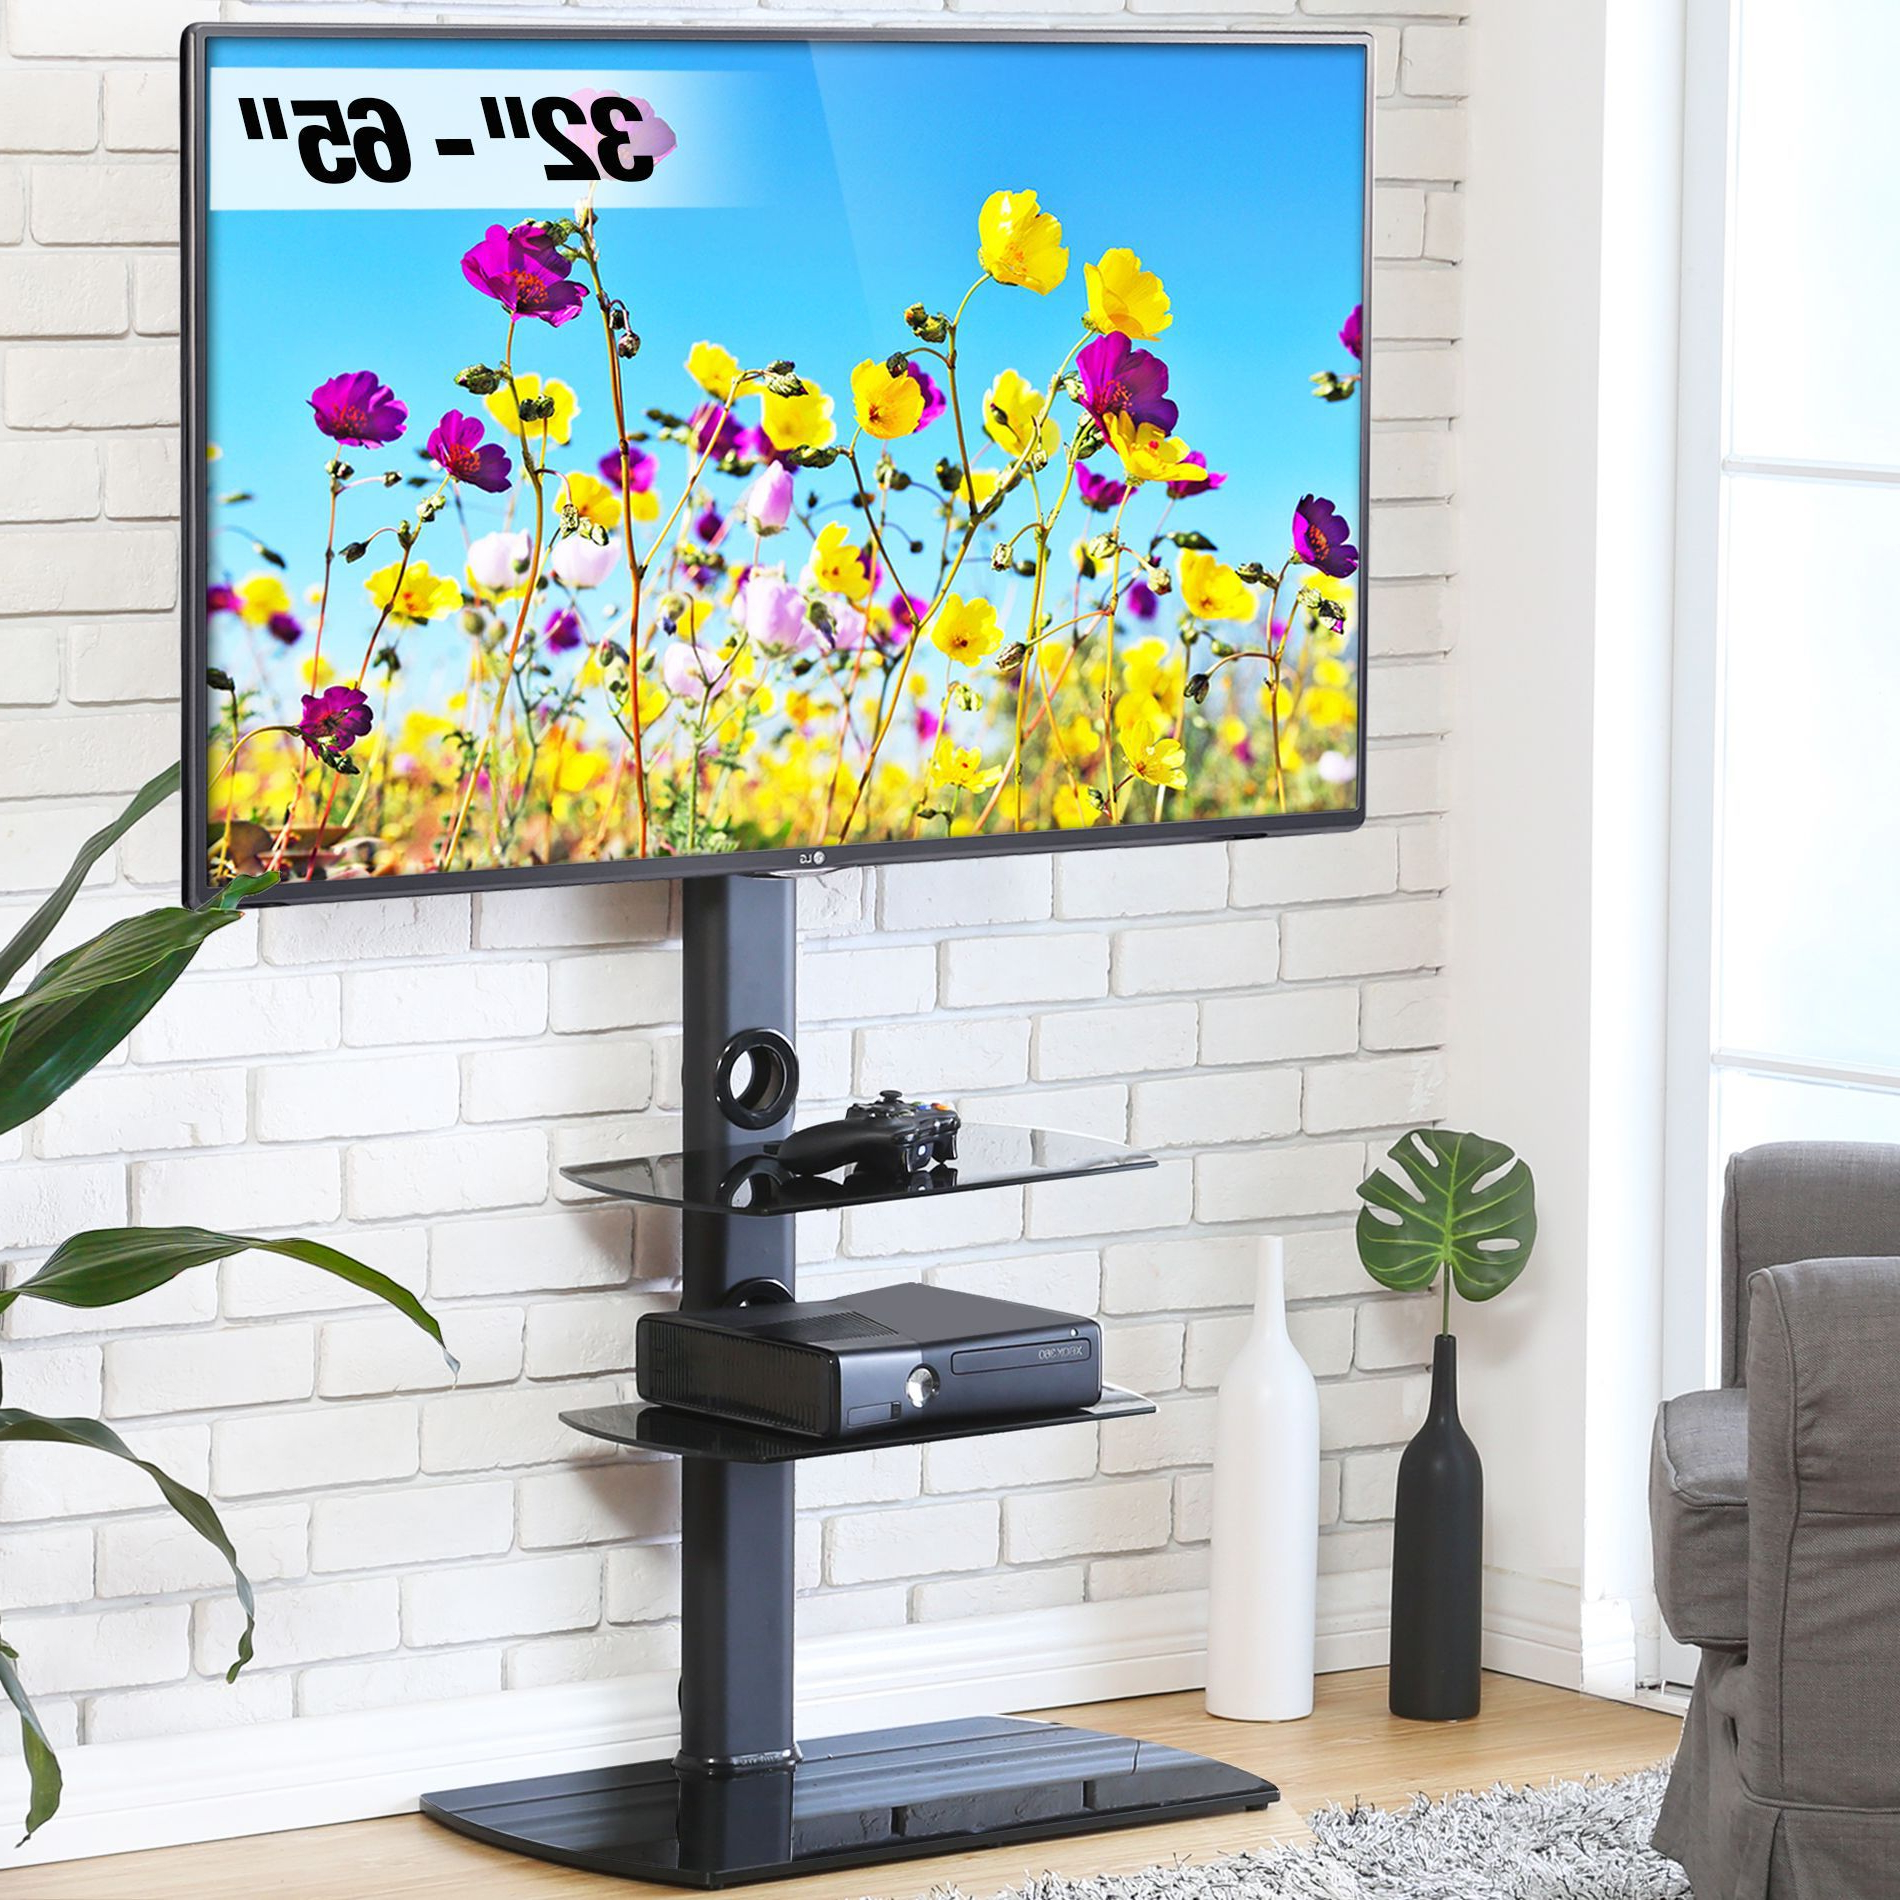 """Most Popular Fitueyes Floor Tv Stand With Wires/cable Management For 32 Regarding Valenti Tv Stands For Tvs Up To 65"""" (View 17 of 25)"""